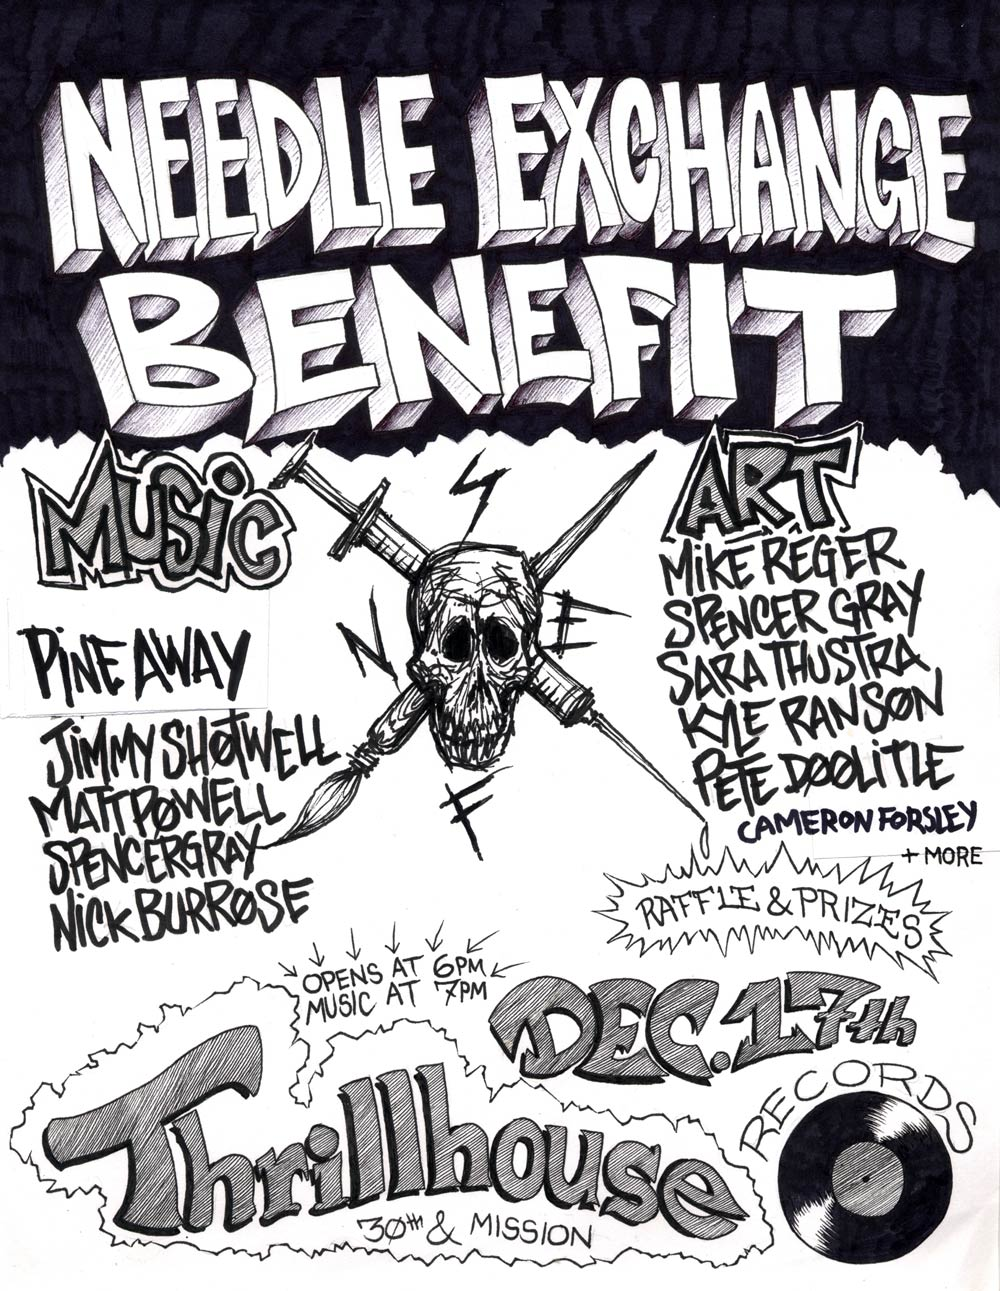 SF Needle Exchange Benefit Art Show